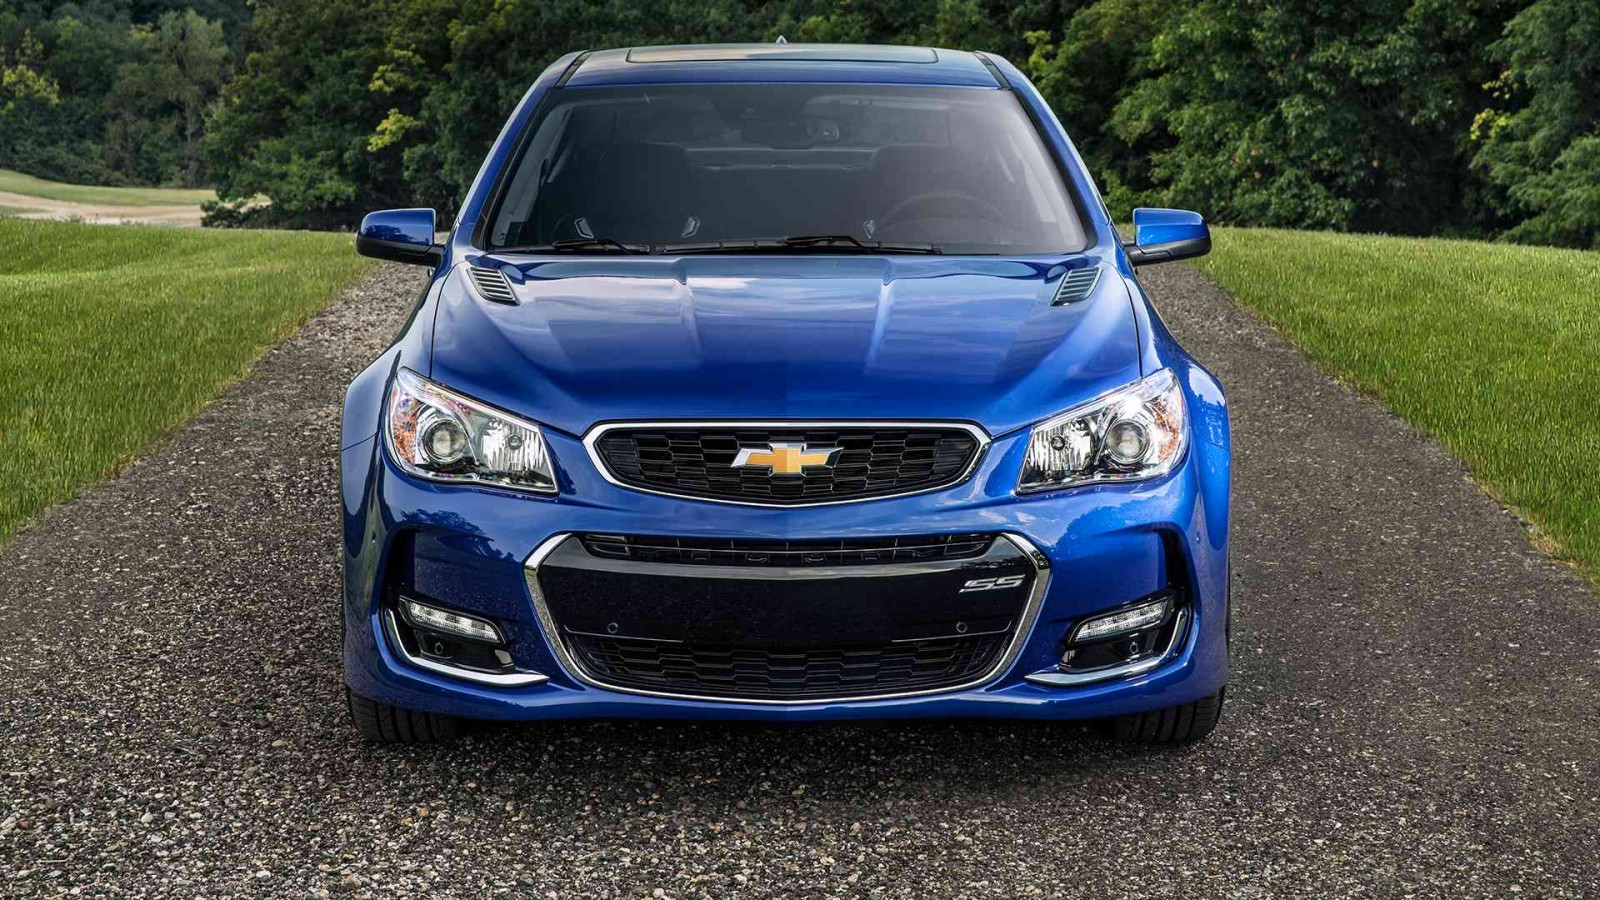 New Chevrolet SS Exterior image 2